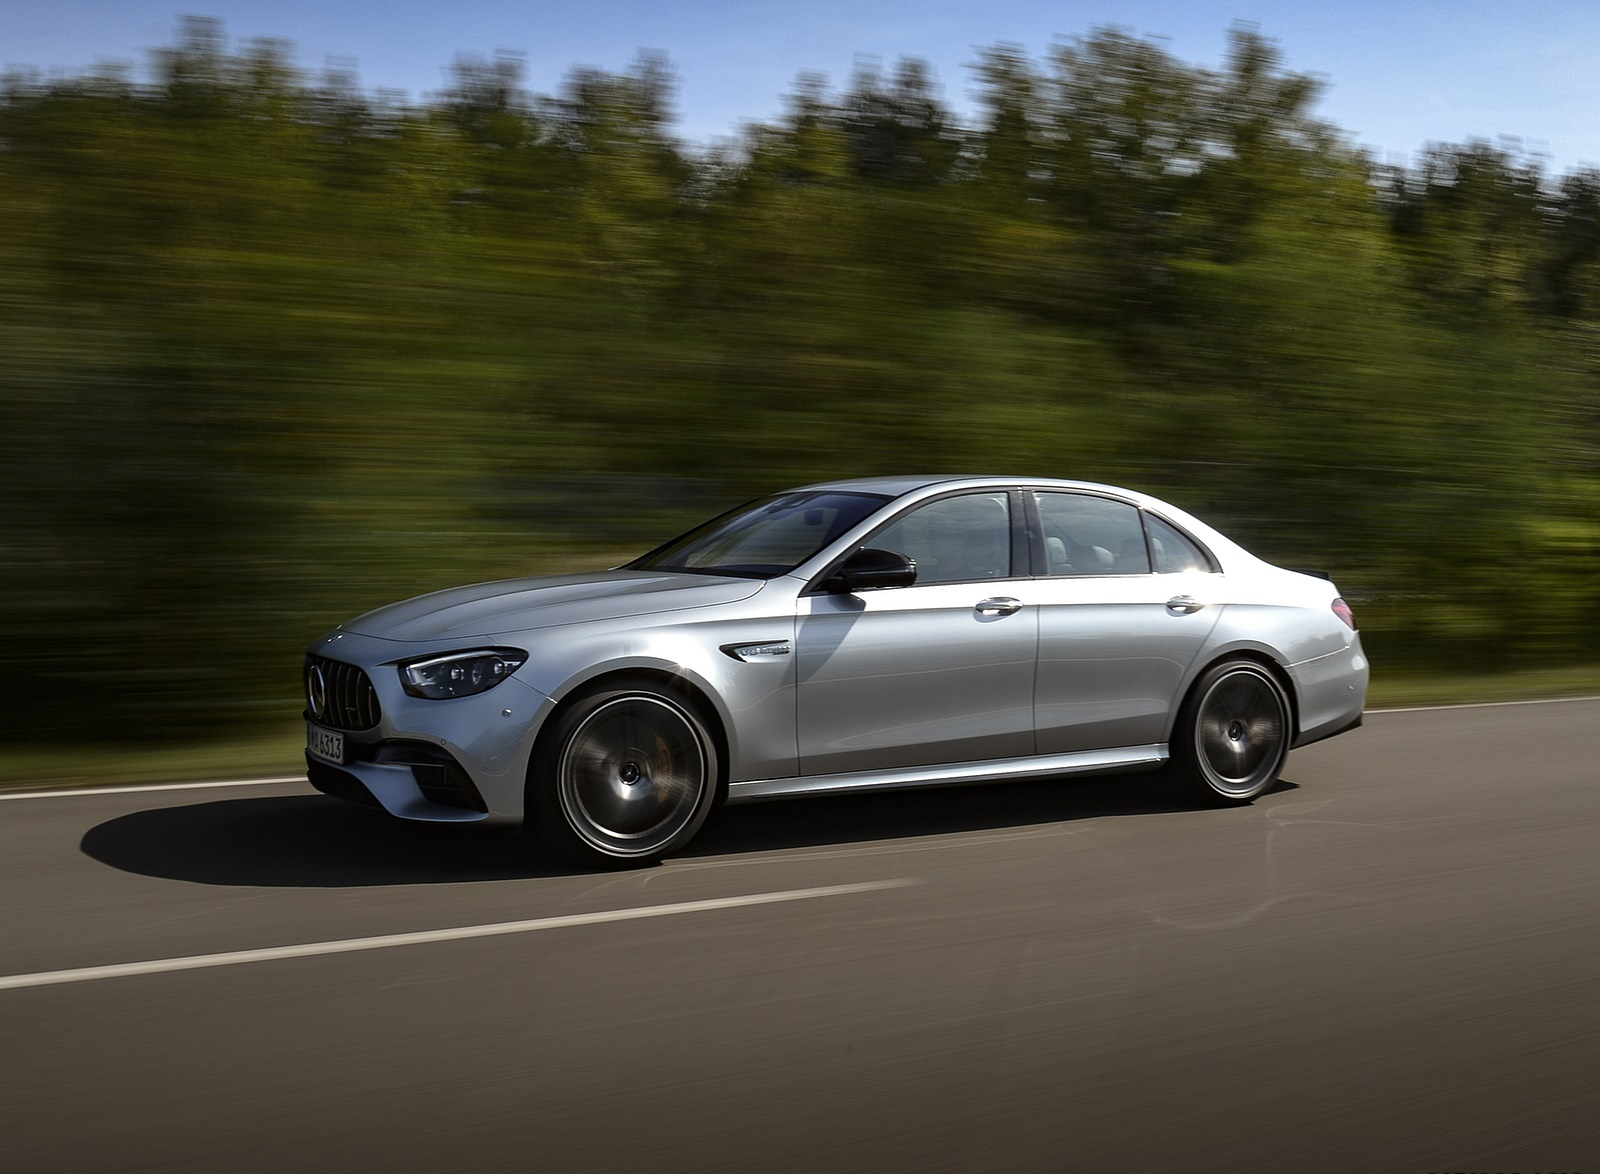 2021 Mercedes-AMG E 63 S 4MATIC+ (Color: High-Tech Silver Metallic) Front Three-Quarter Wallpapers (7)